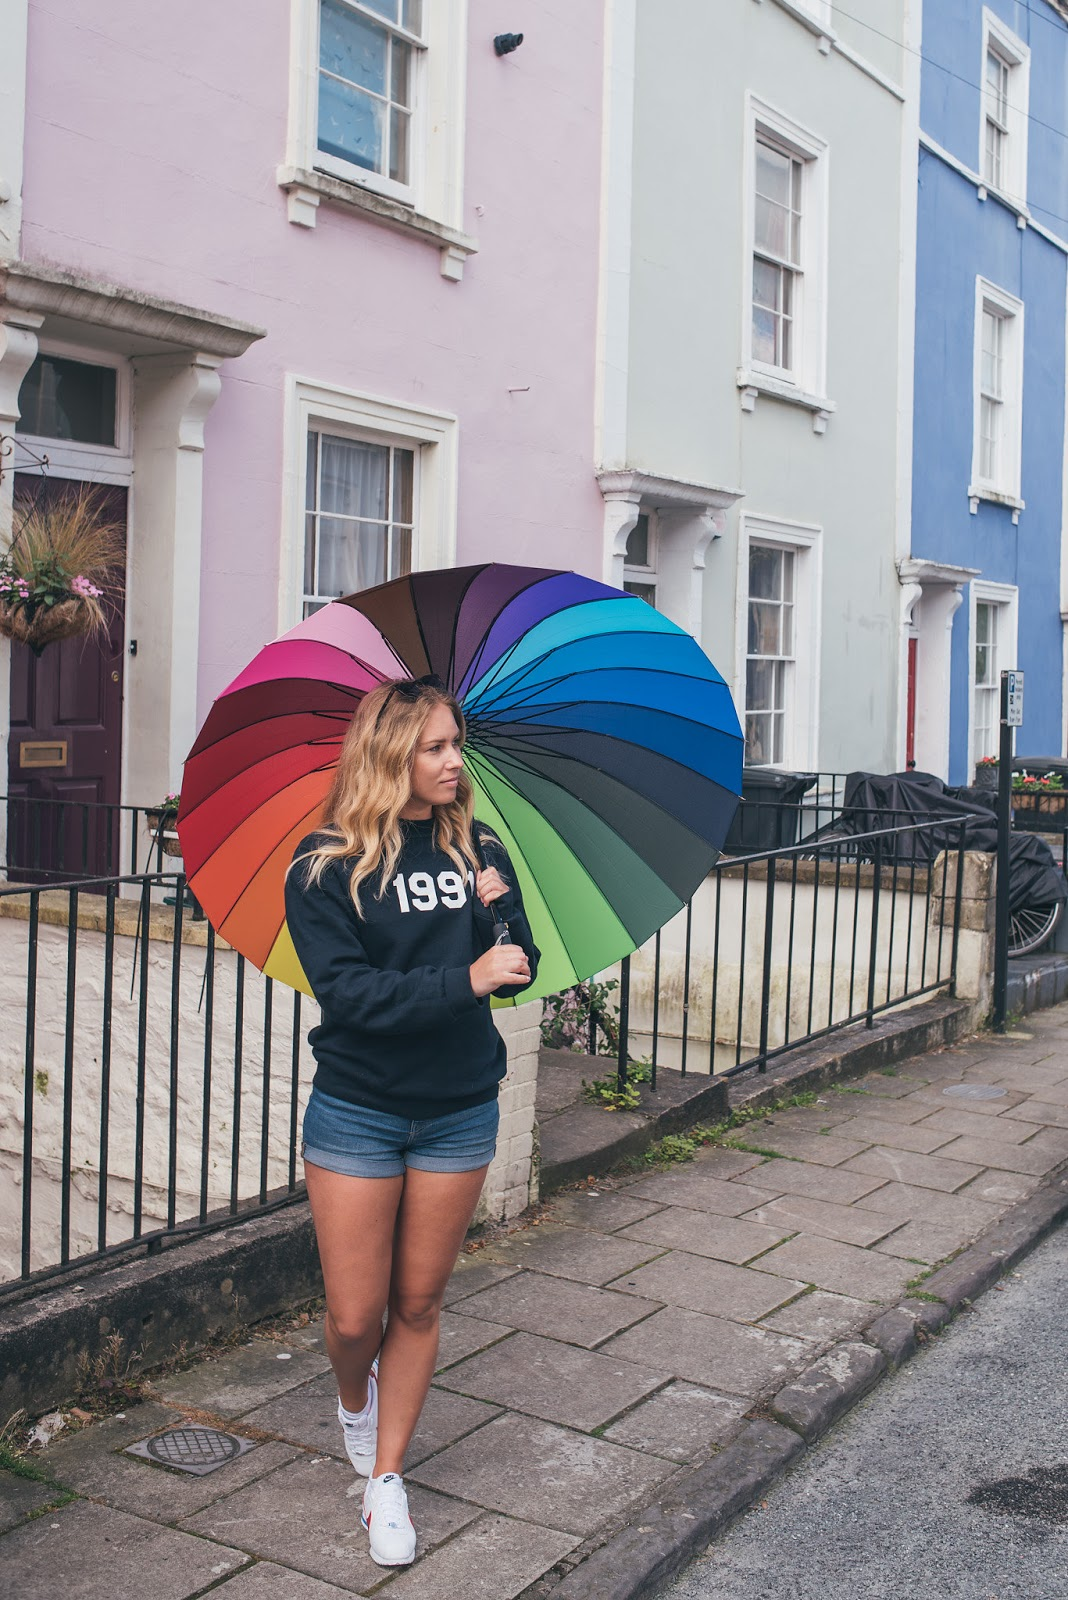 Rachel Emily with Rainbow Umbrella in front of Pastel Rainbow Houses